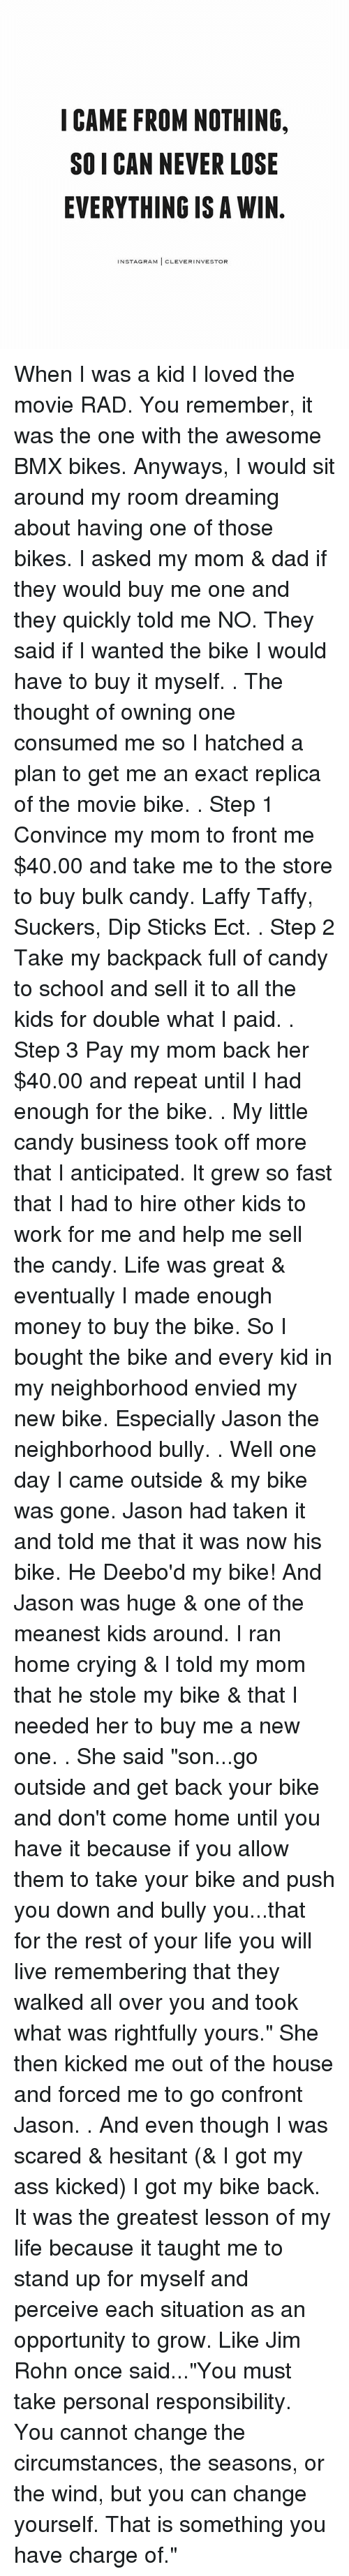 "Confrontable: I CAME FROM NOTHING.  SO I CAN NEVER LOSE  EVERYTHING IS A WIN  NSTAGRAM  CLEVERINVESTOR When I was a kid I loved the movie RAD. You remember, it was the one with the awesome BMX bikes. Anyways, I would sit around my room dreaming about having one of those bikes. I asked my mom & dad if they would buy me one and they quickly told me NO. They said if I wanted the bike I would have to buy it myself. . The thought of owning one consumed me so I hatched a plan to get me an exact replica of the movie bike. . Step 1 Convince my mom to front me $40.00 and take me to the store to buy bulk candy. Laffy Taffy, Suckers, Dip Sticks Ect. . Step 2 Take my backpack full of candy to school and sell it to all the kids for double what I paid. . Step 3 Pay my mom back her $40.00 and repeat until I had enough for the bike. . My little candy business took off more that I anticipated. It grew so fast that I had to hire other kids to work for me and help me sell the candy. Life was great & eventually I made enough money to buy the bike. So I bought the bike and every kid in my neighborhood envied my new bike. Especially Jason the neighborhood bully. . Well one day I came outside & my bike was gone. Jason had taken it and told me that it was now his bike. He Deebo'd my bike! And Jason was huge & one of the meanest kids around. I ran home crying & I told my mom that he stole my bike & that I needed her to buy me a new one. . She said ""son...go outside and get back your bike and don't come home until you have it because if you allow them to take your bike and push you down and bully you...that for the rest of your life you will live remembering that they walked all over you and took what was rightfully yours."" She then kicked me out of the house and forced me to go confront Jason. . And even though I was scared & hesitant (& I got my ass kicked) I got my bike back. It was the greatest lesson of my life because it taught me to stand up for myself and perceive each situation as an opportunity to grow. Like Jim Rohn once said...""You must take personal responsibility. You cannot change the circumstances, the seasons, or the wind, but you can change yourself. That is something you have charge of."""